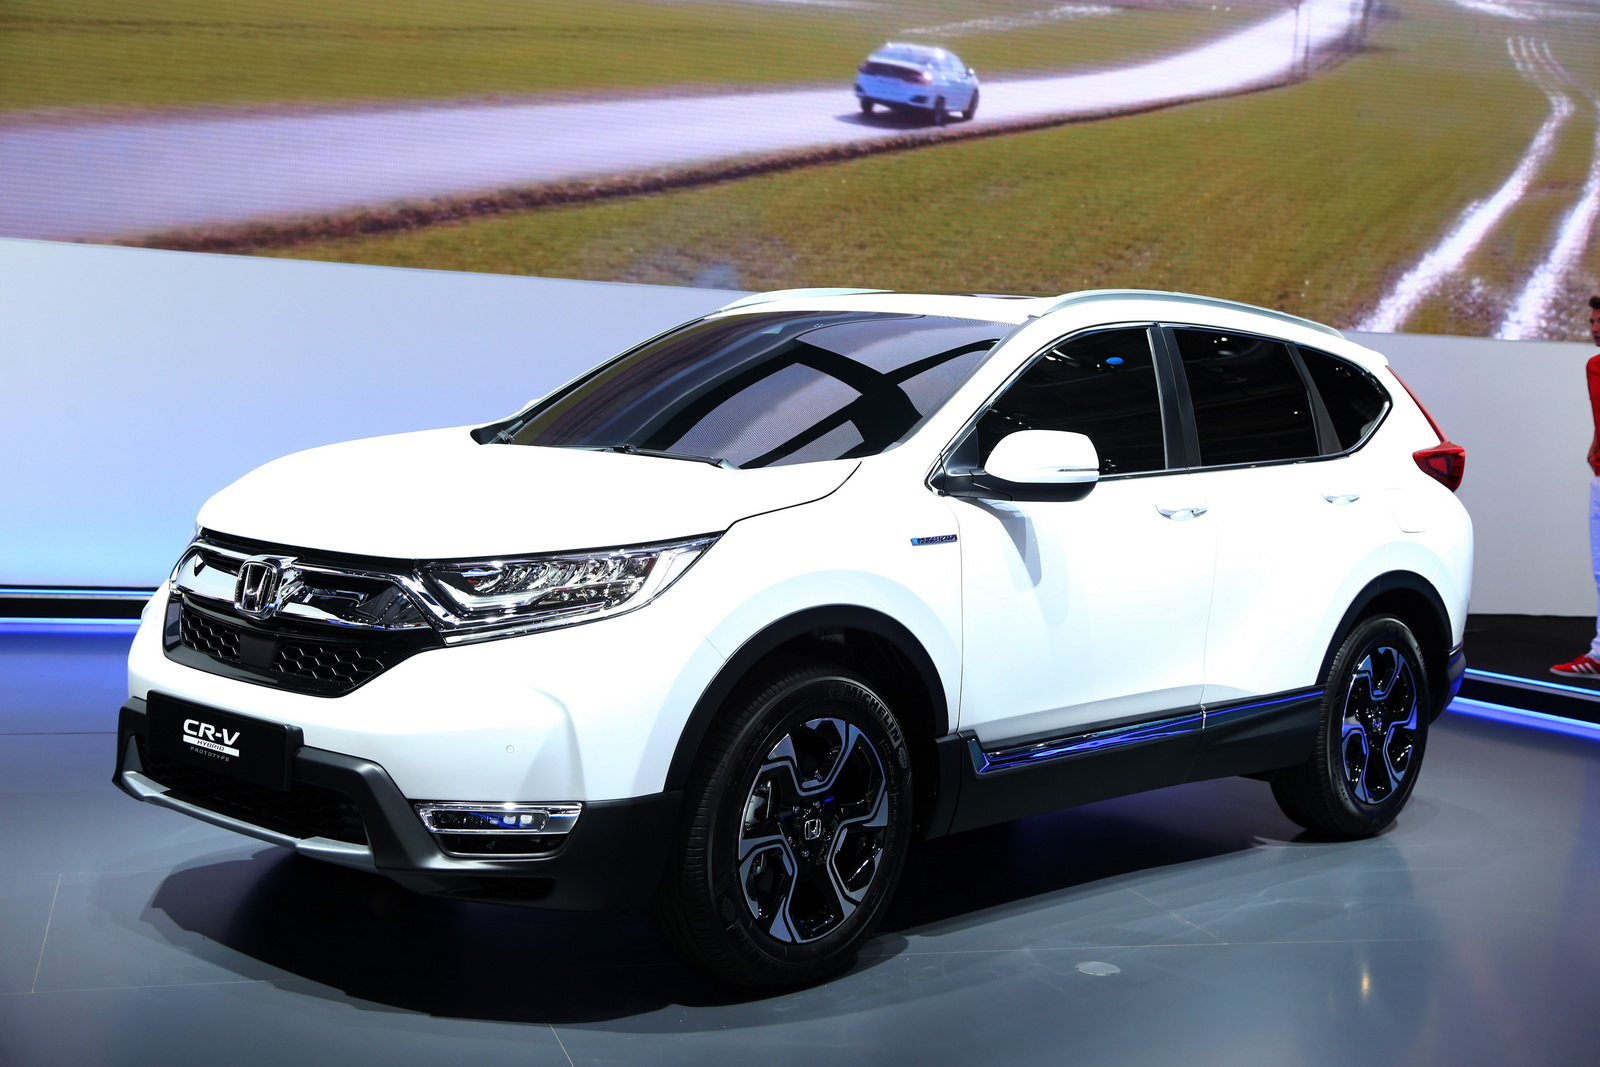 Honda Mrv 2018: Euro-Spec 2018 Honda CR-V Joins Team Hybrid After Ditching